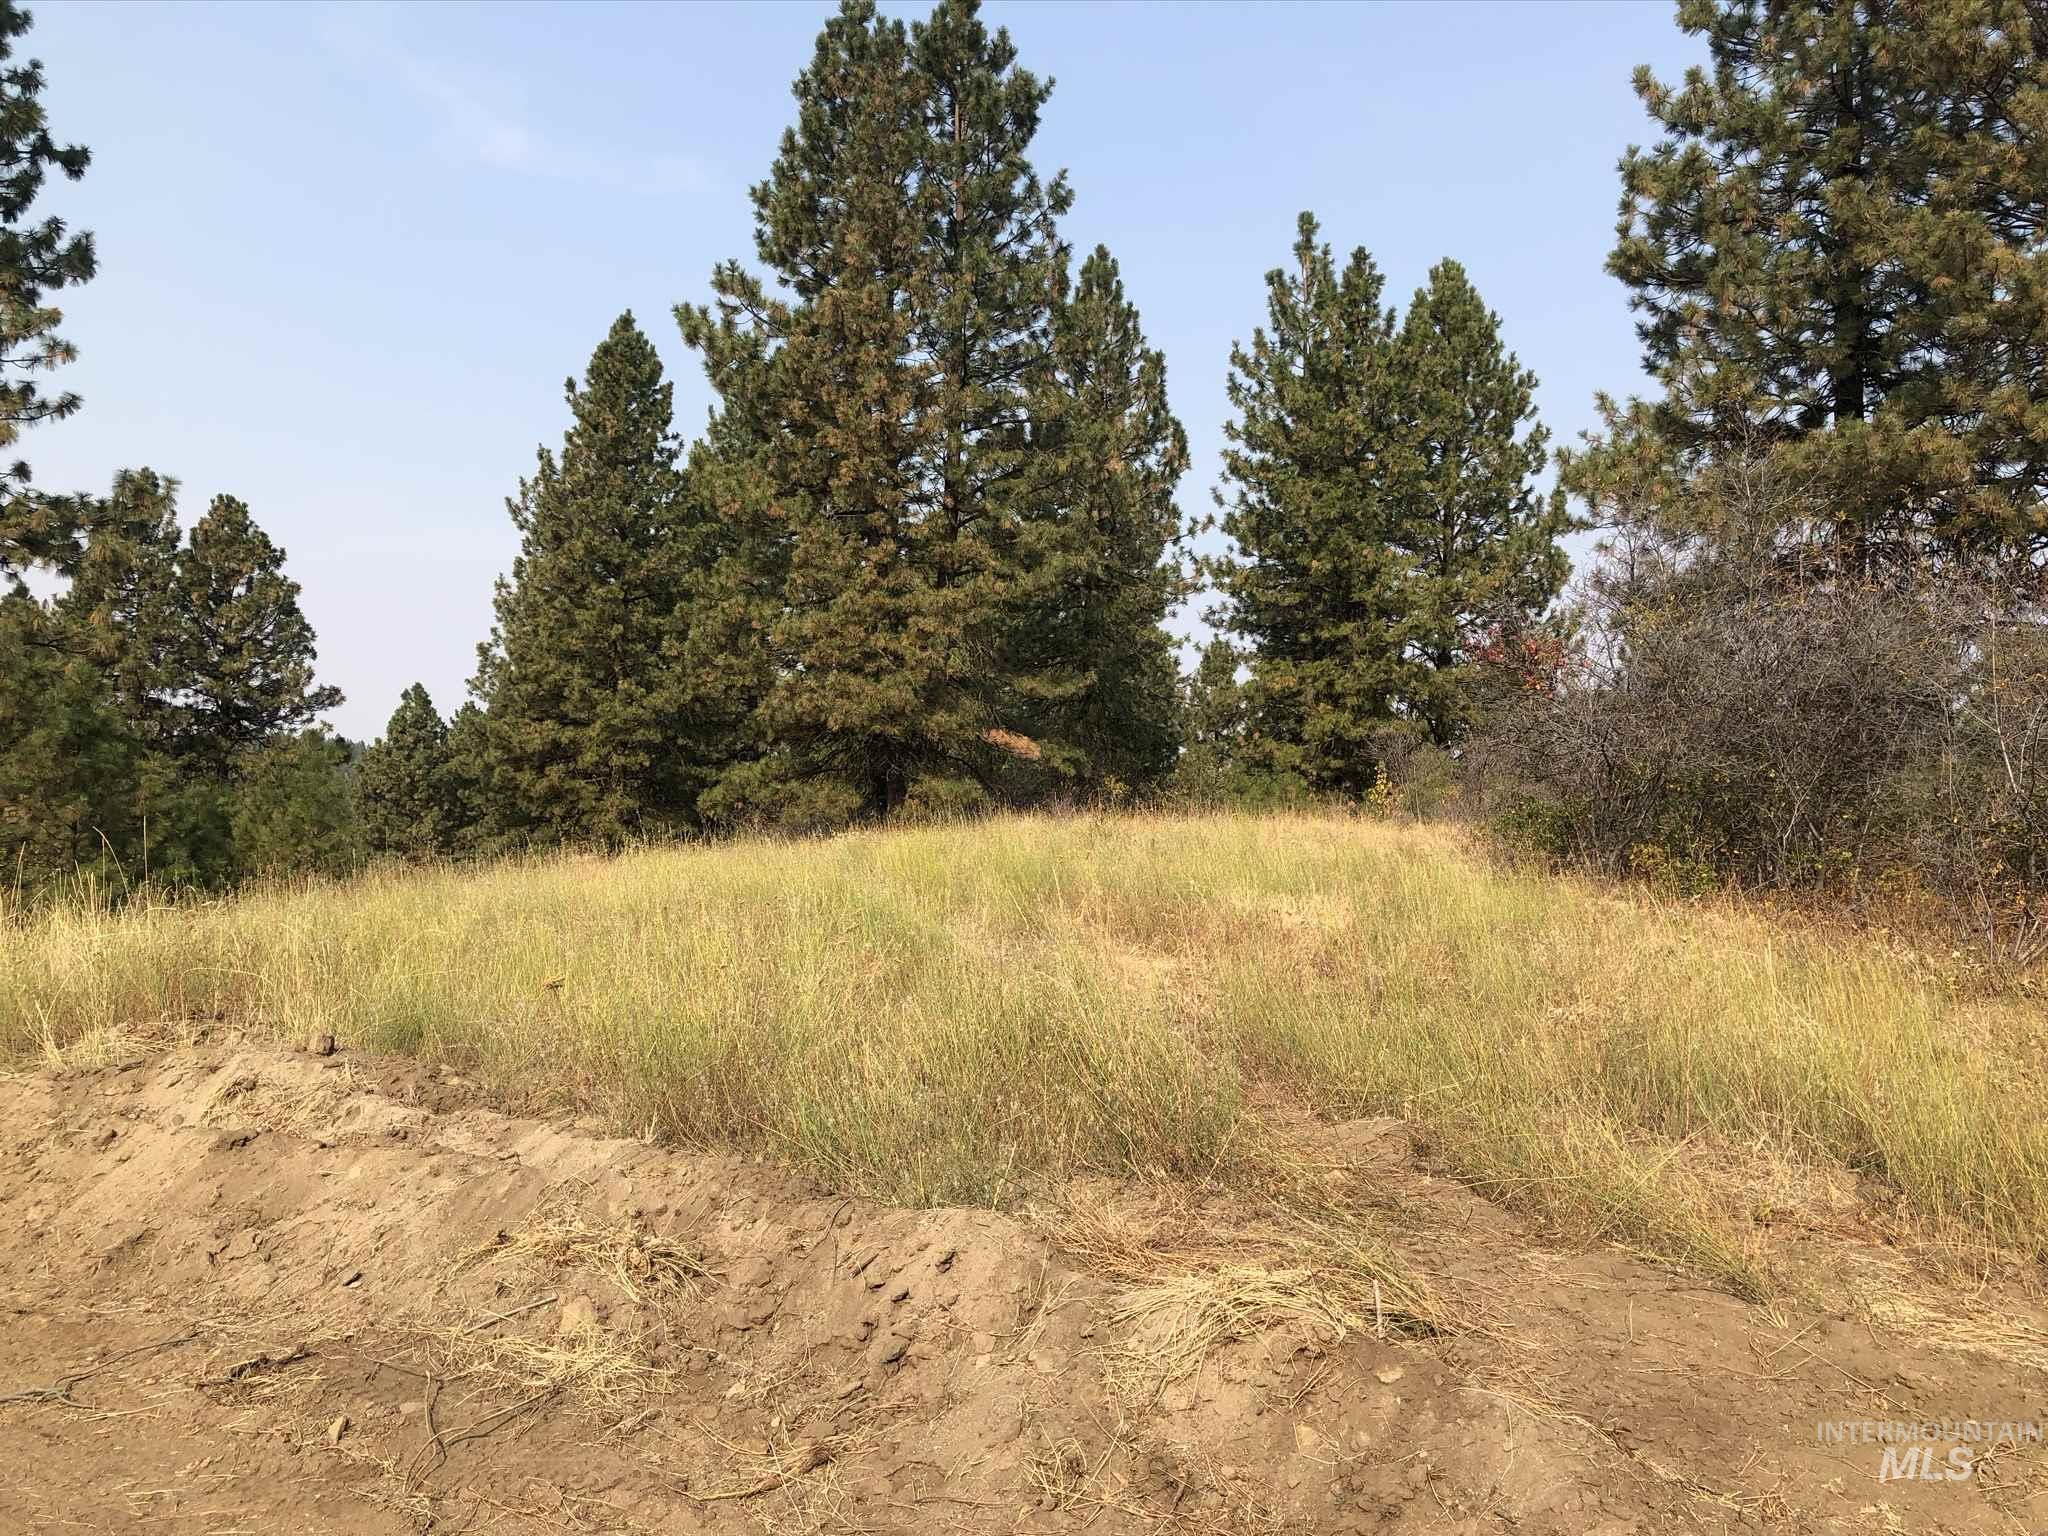 TBD Lot 20 Outlaw Trail, Banks, Idaho 83602, Land For Sale, Price $75,000, 98783748